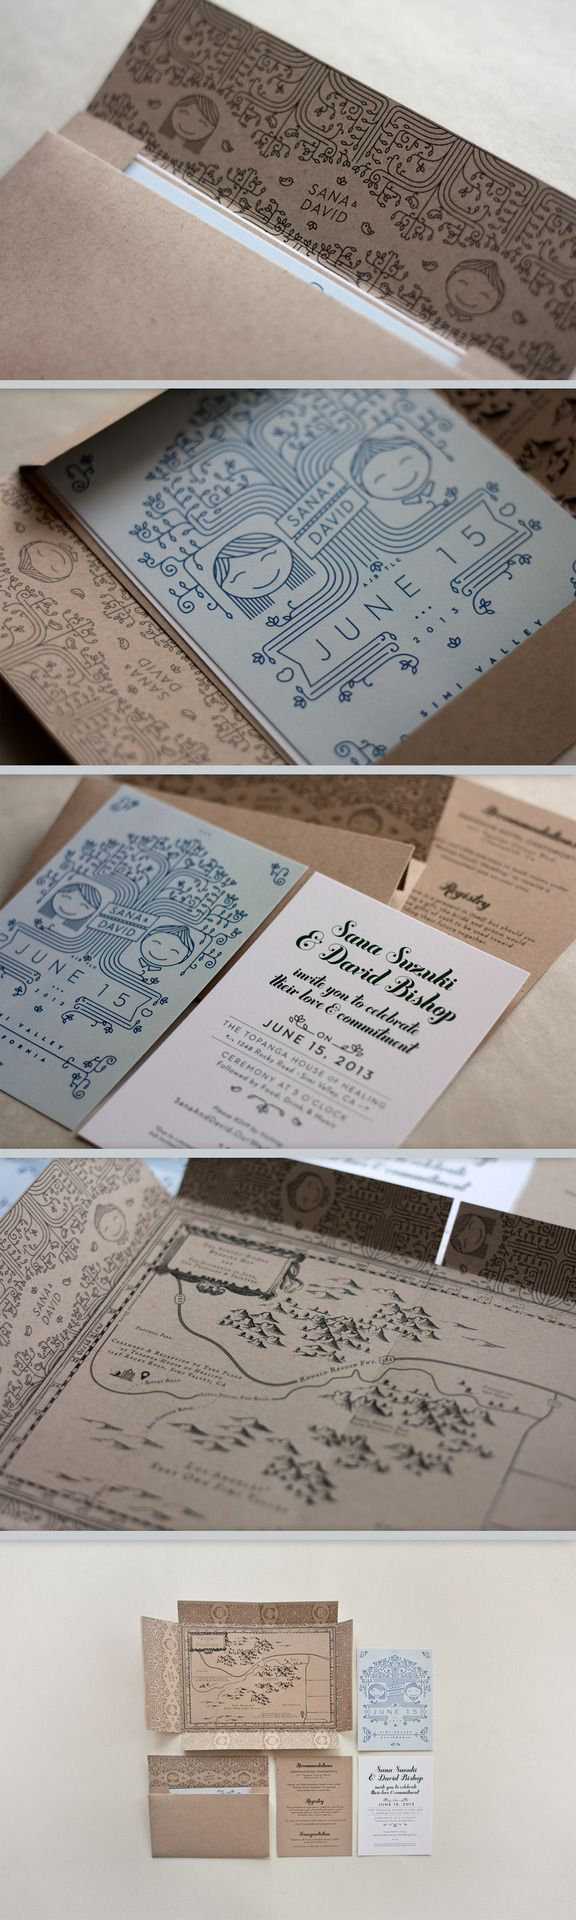 Wedding Invitation Set With Map That Becomes The Envelope I Love